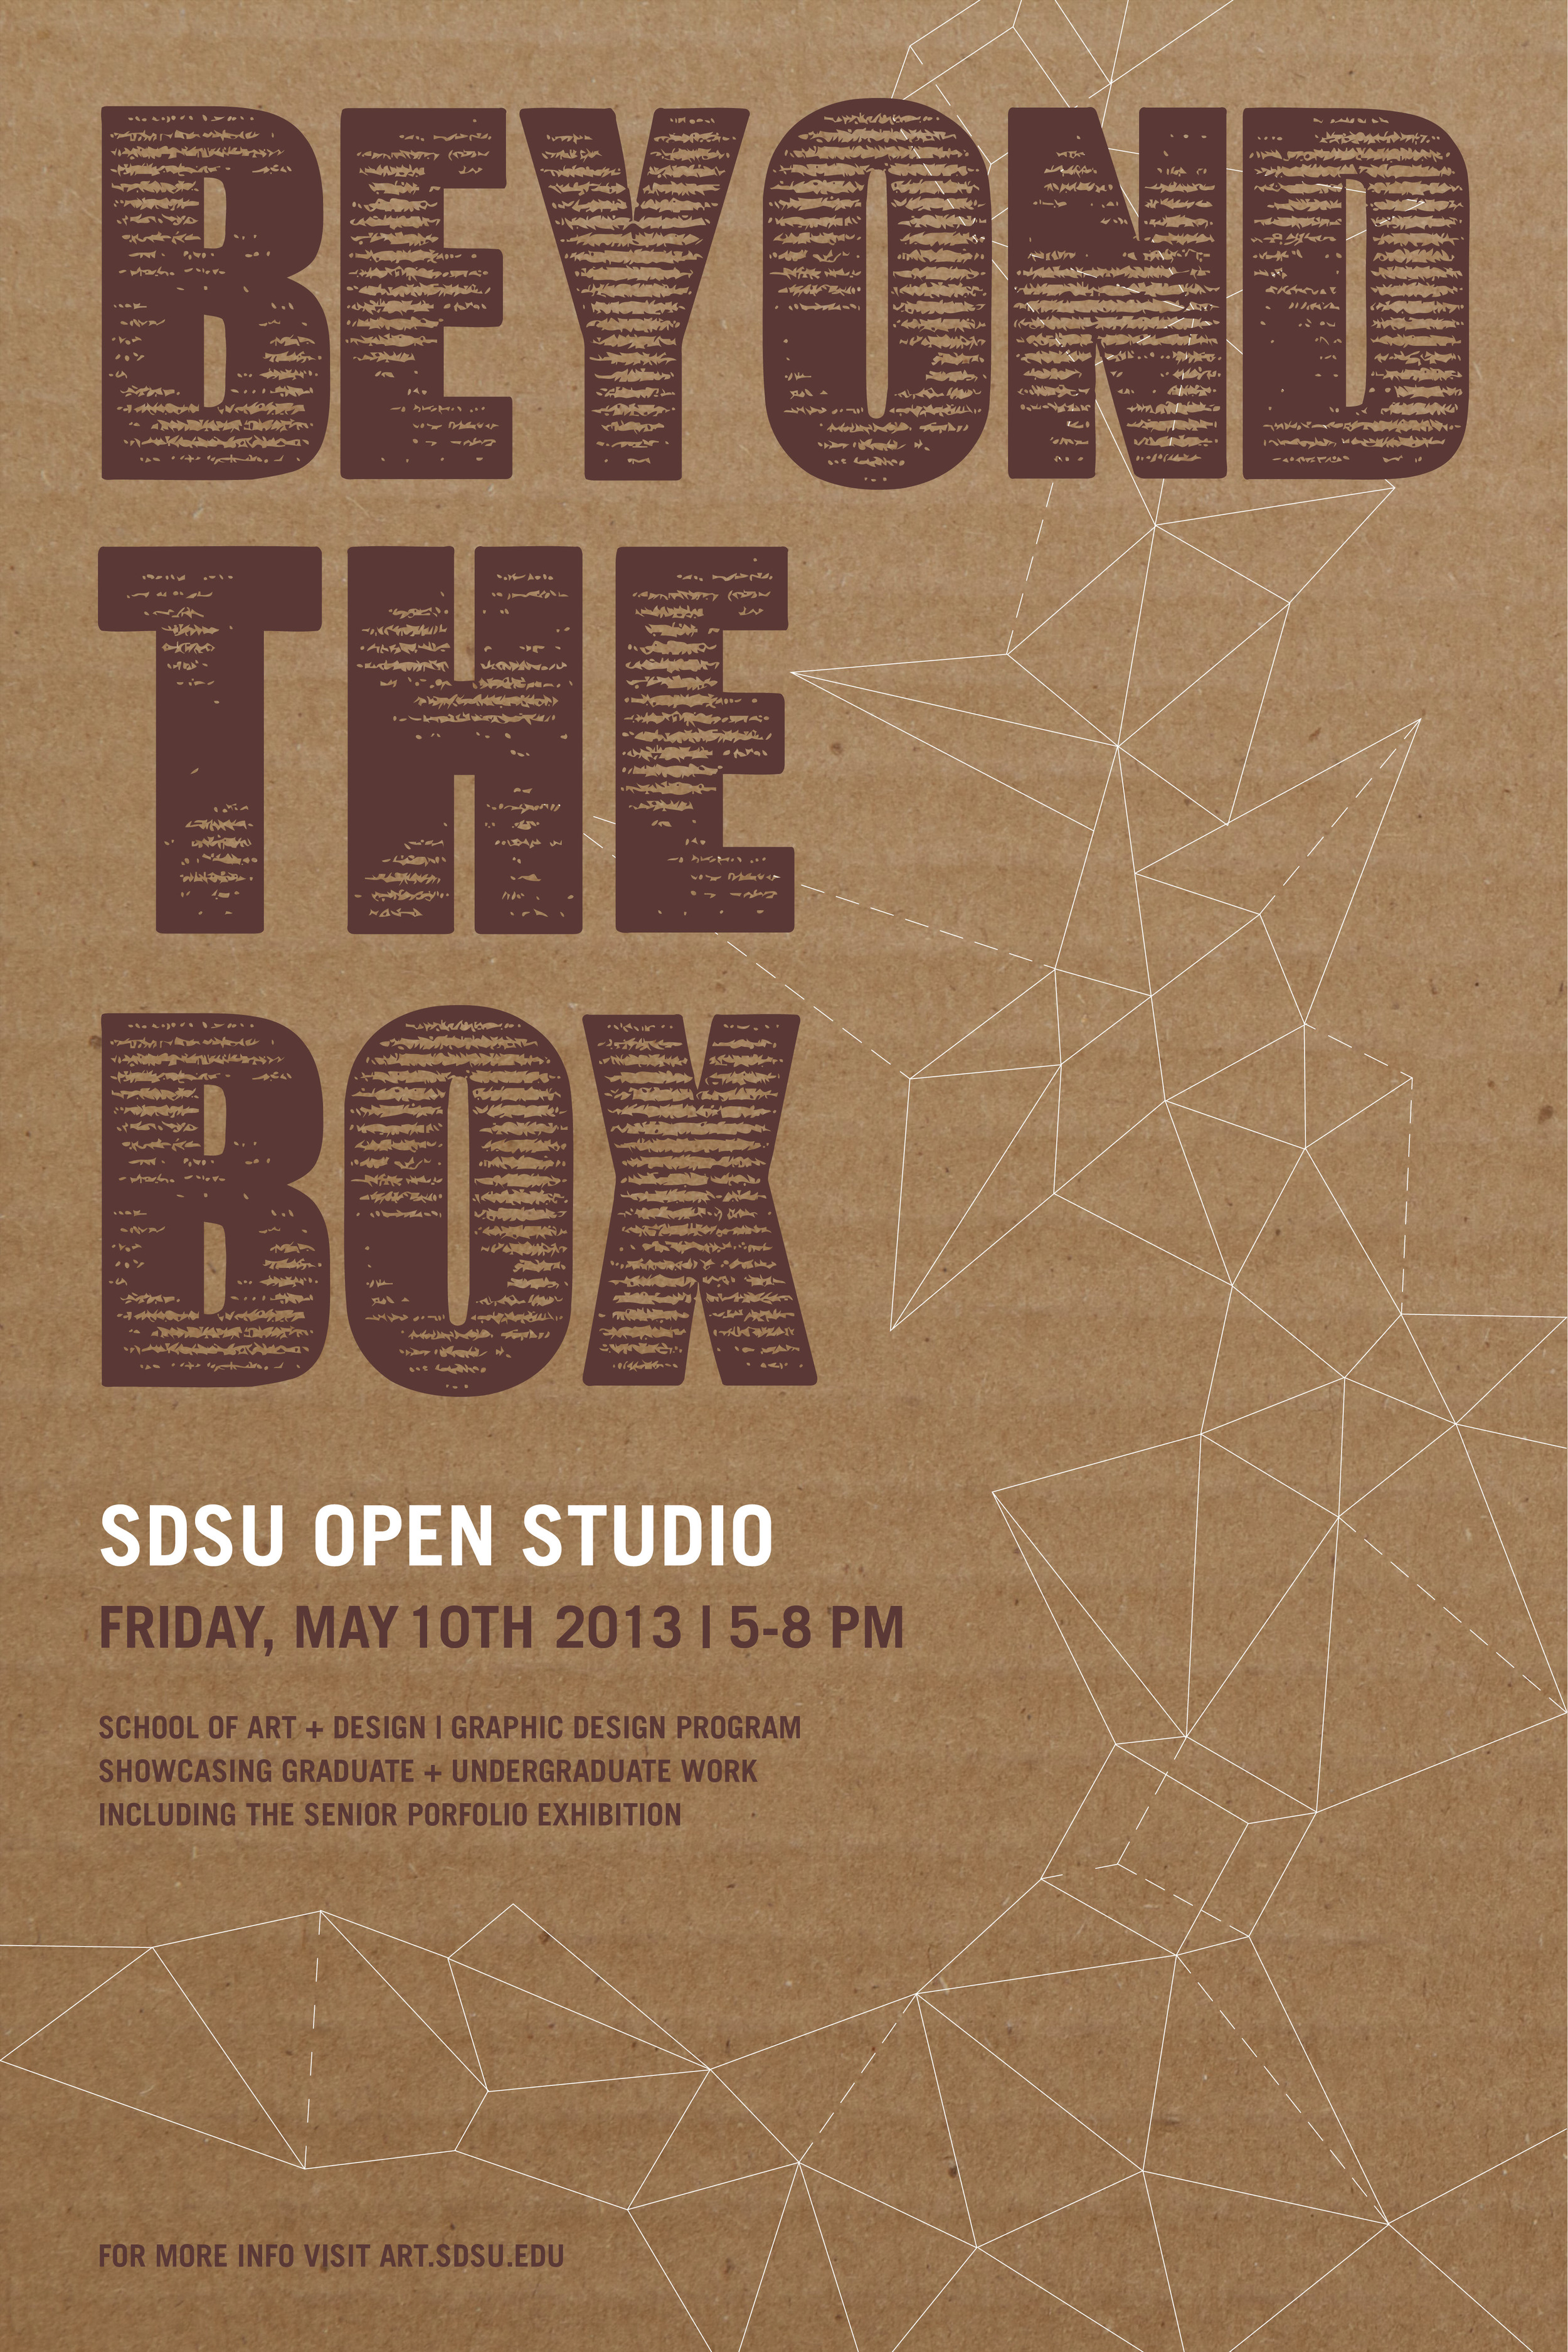 SDSU Open Studio poster created for the Art Department